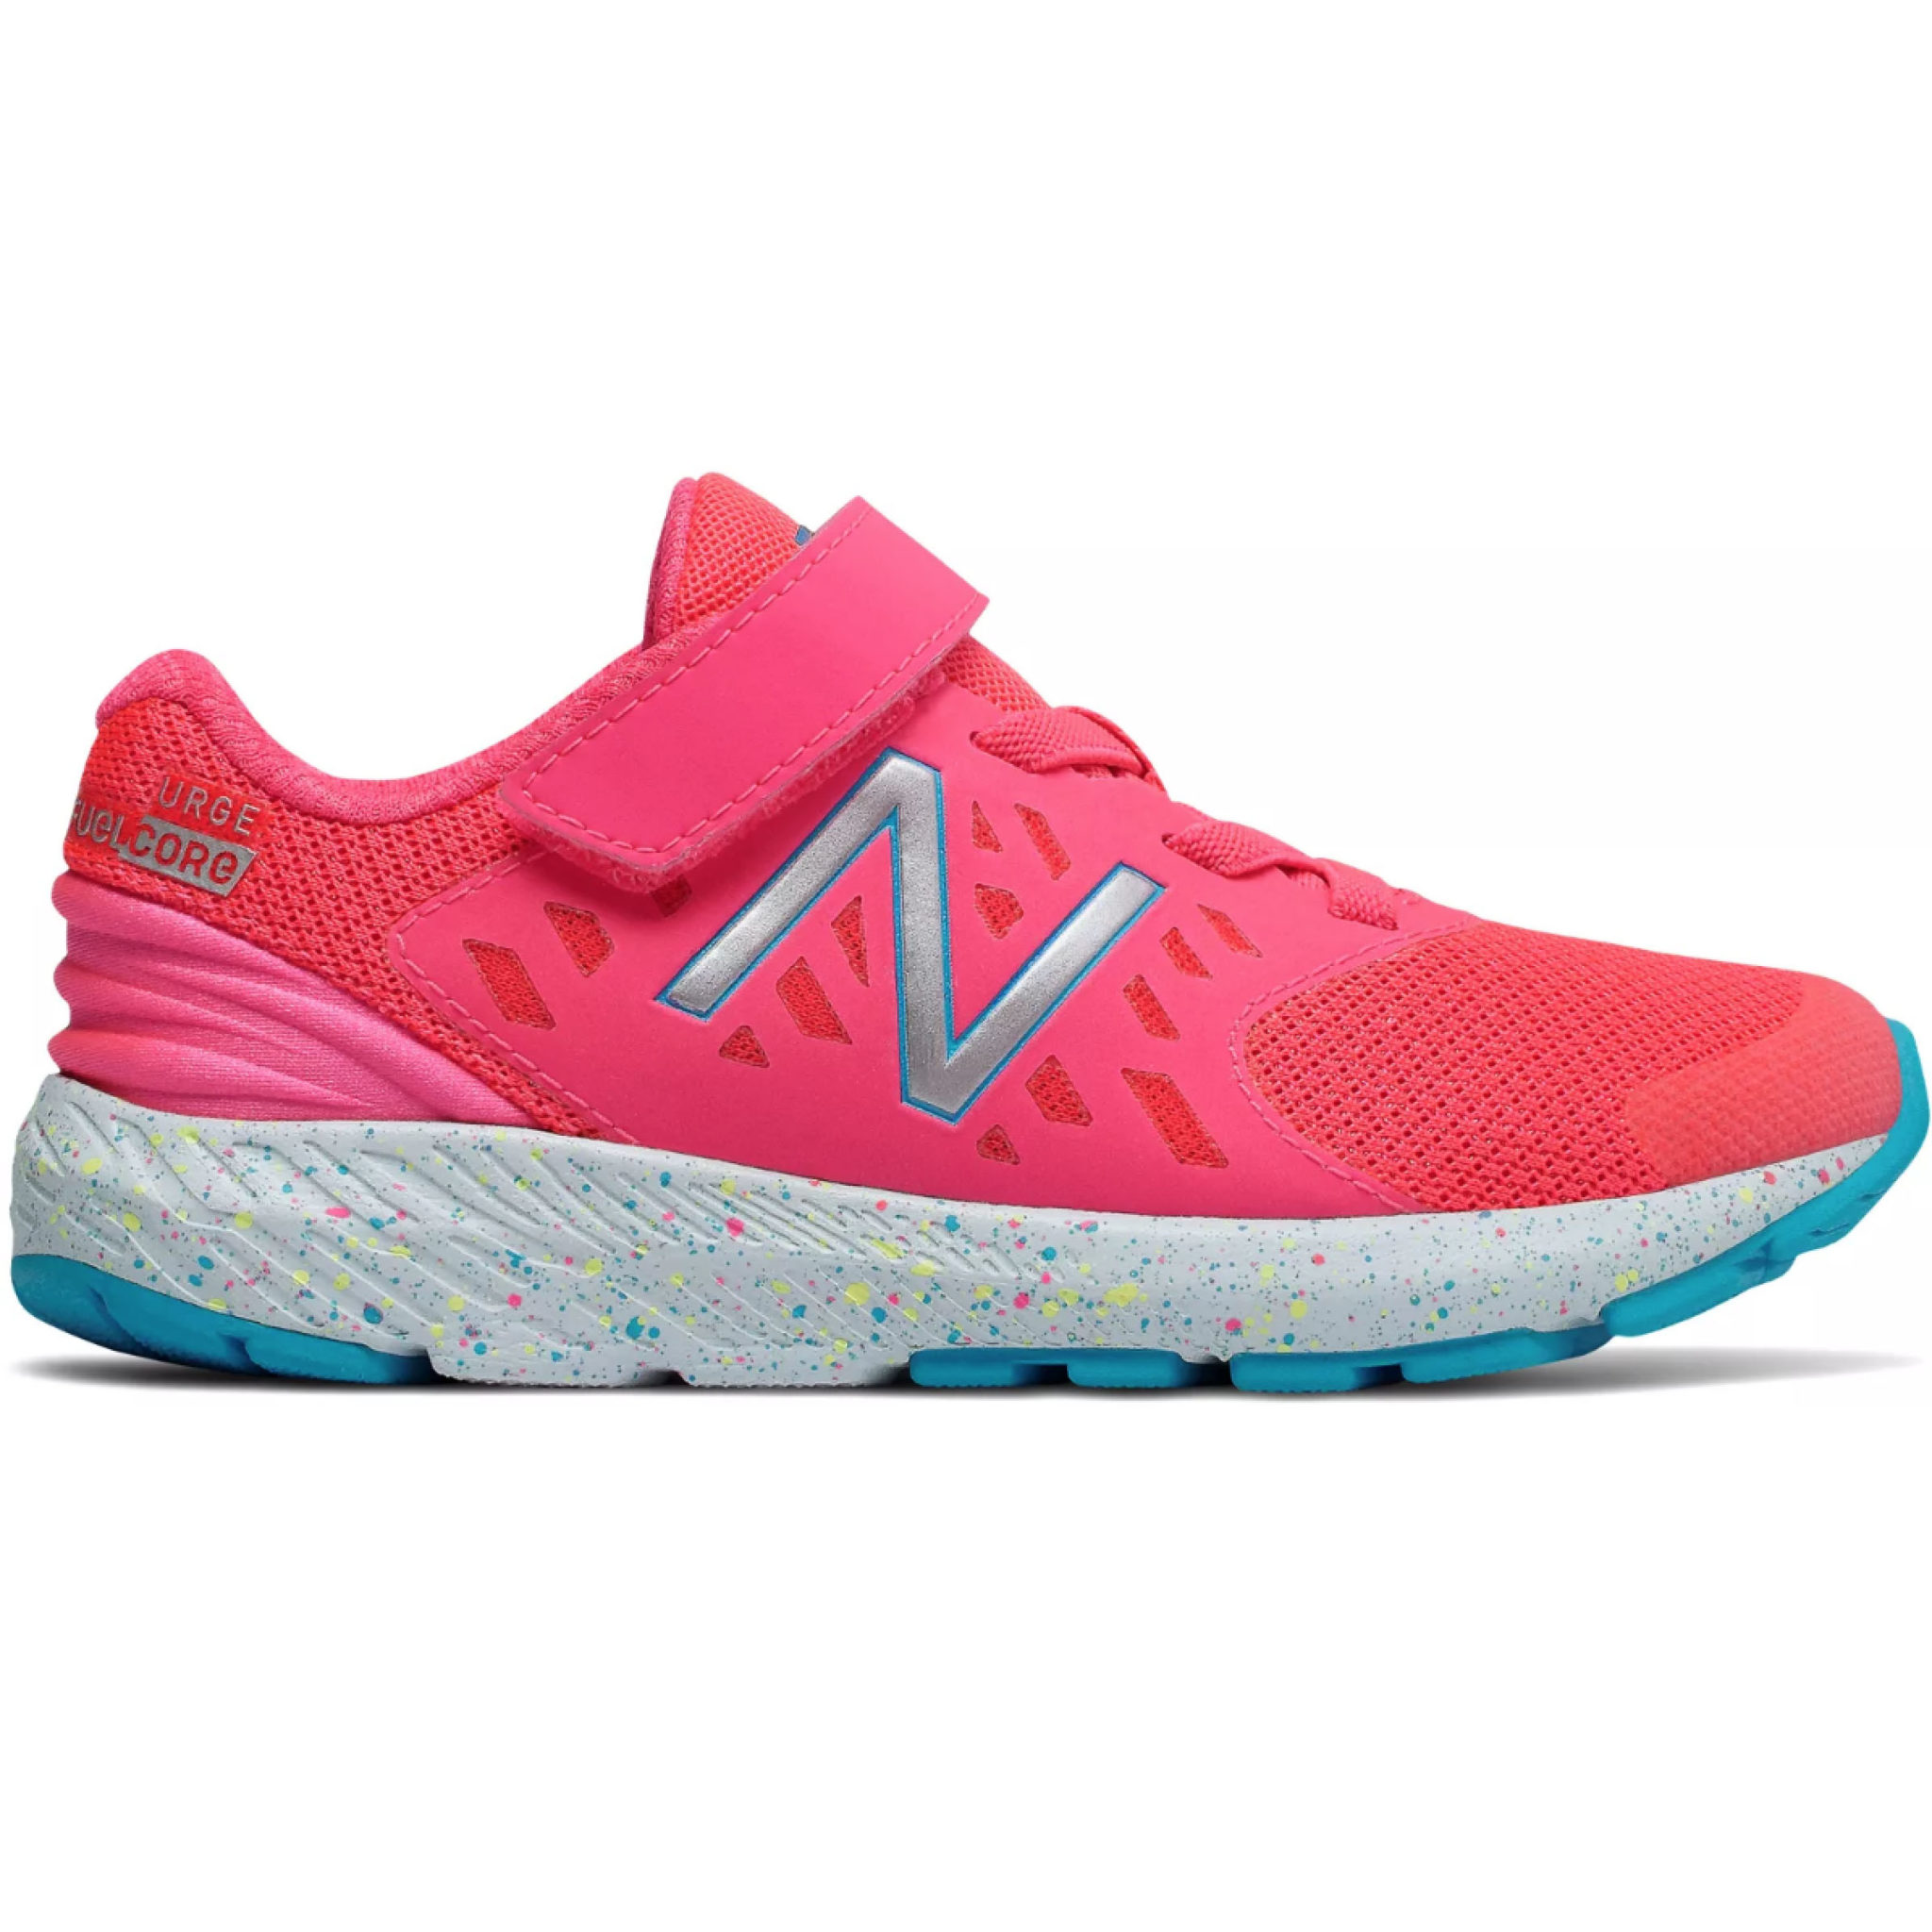 new balance fuelcore urge v2 review